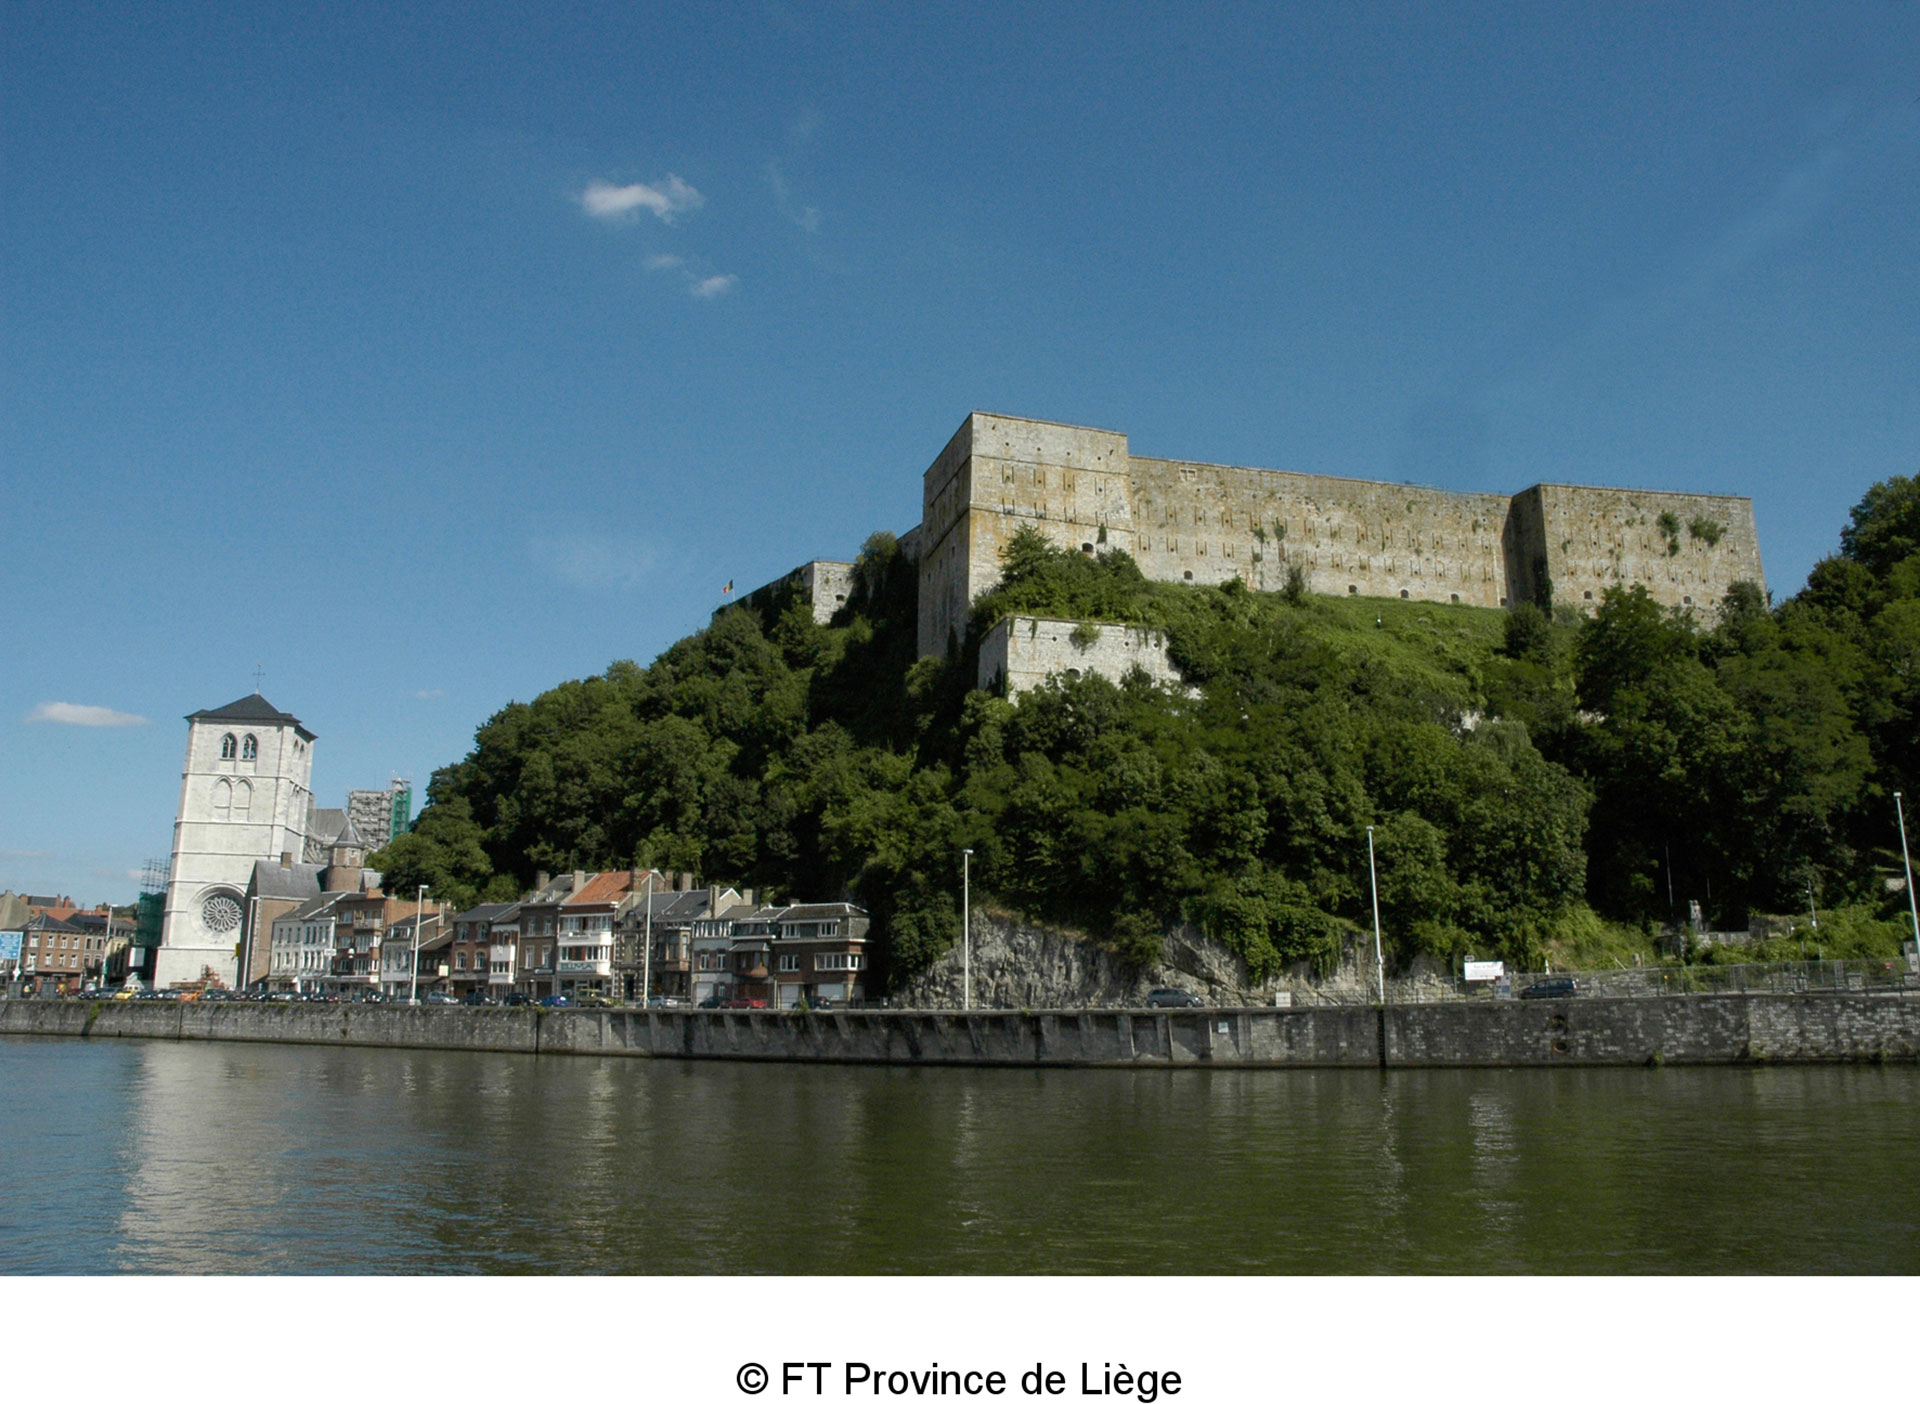 Huy - Collegiale Notre-dame - Fort